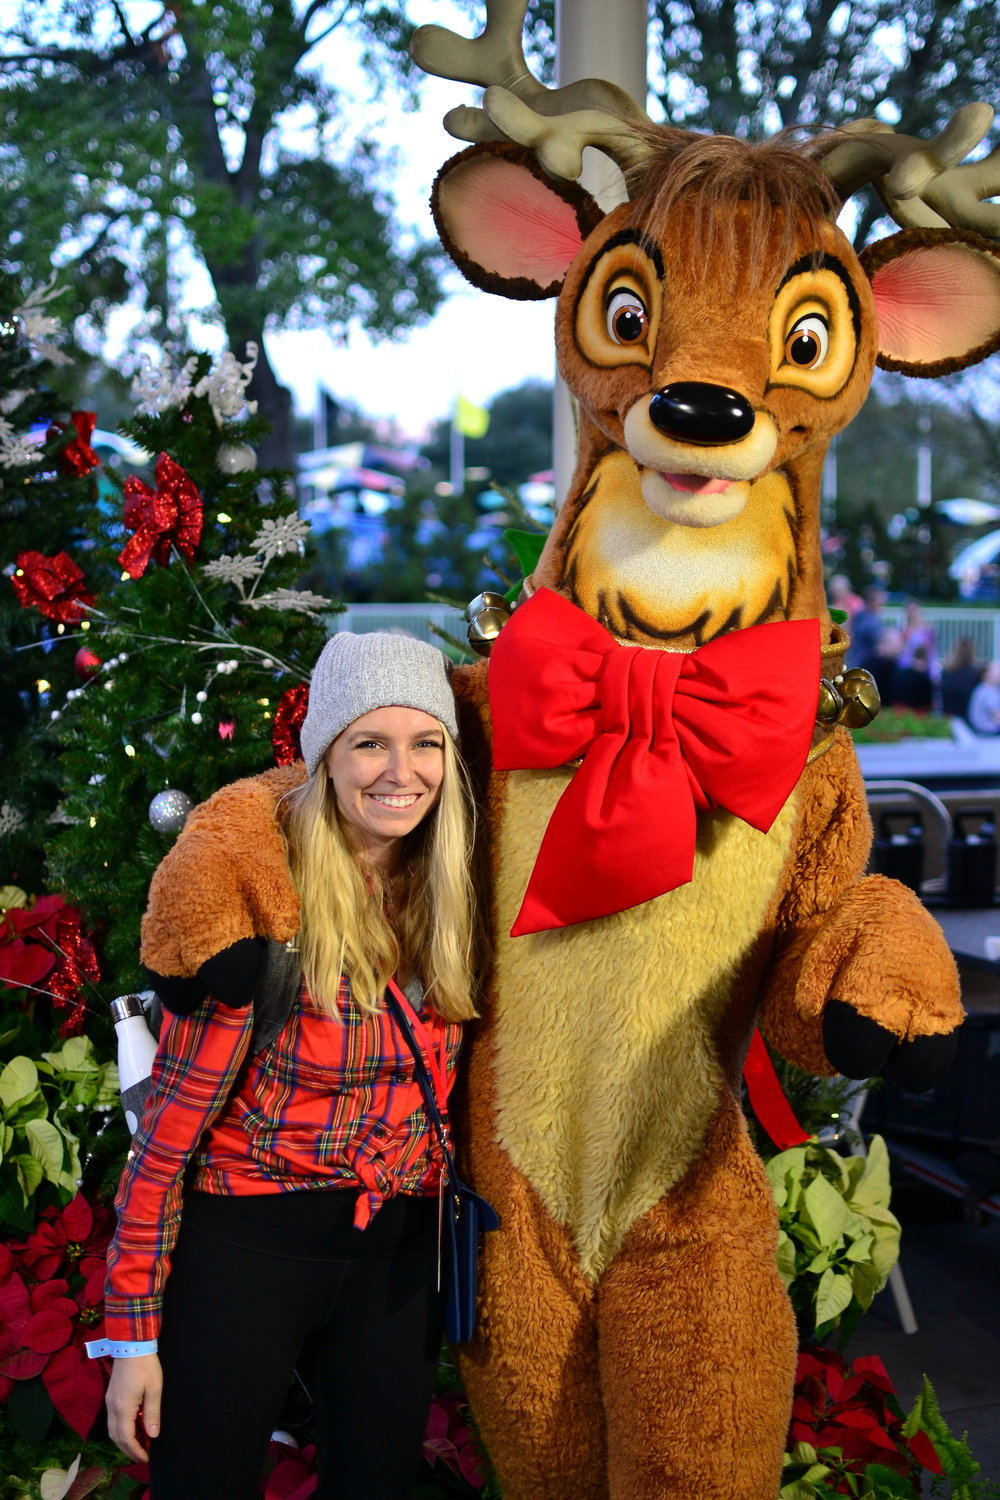 a68f4ae4fa There are a few characters at Mickey s Very Merry Christmas Party that you  don t normally see around the park